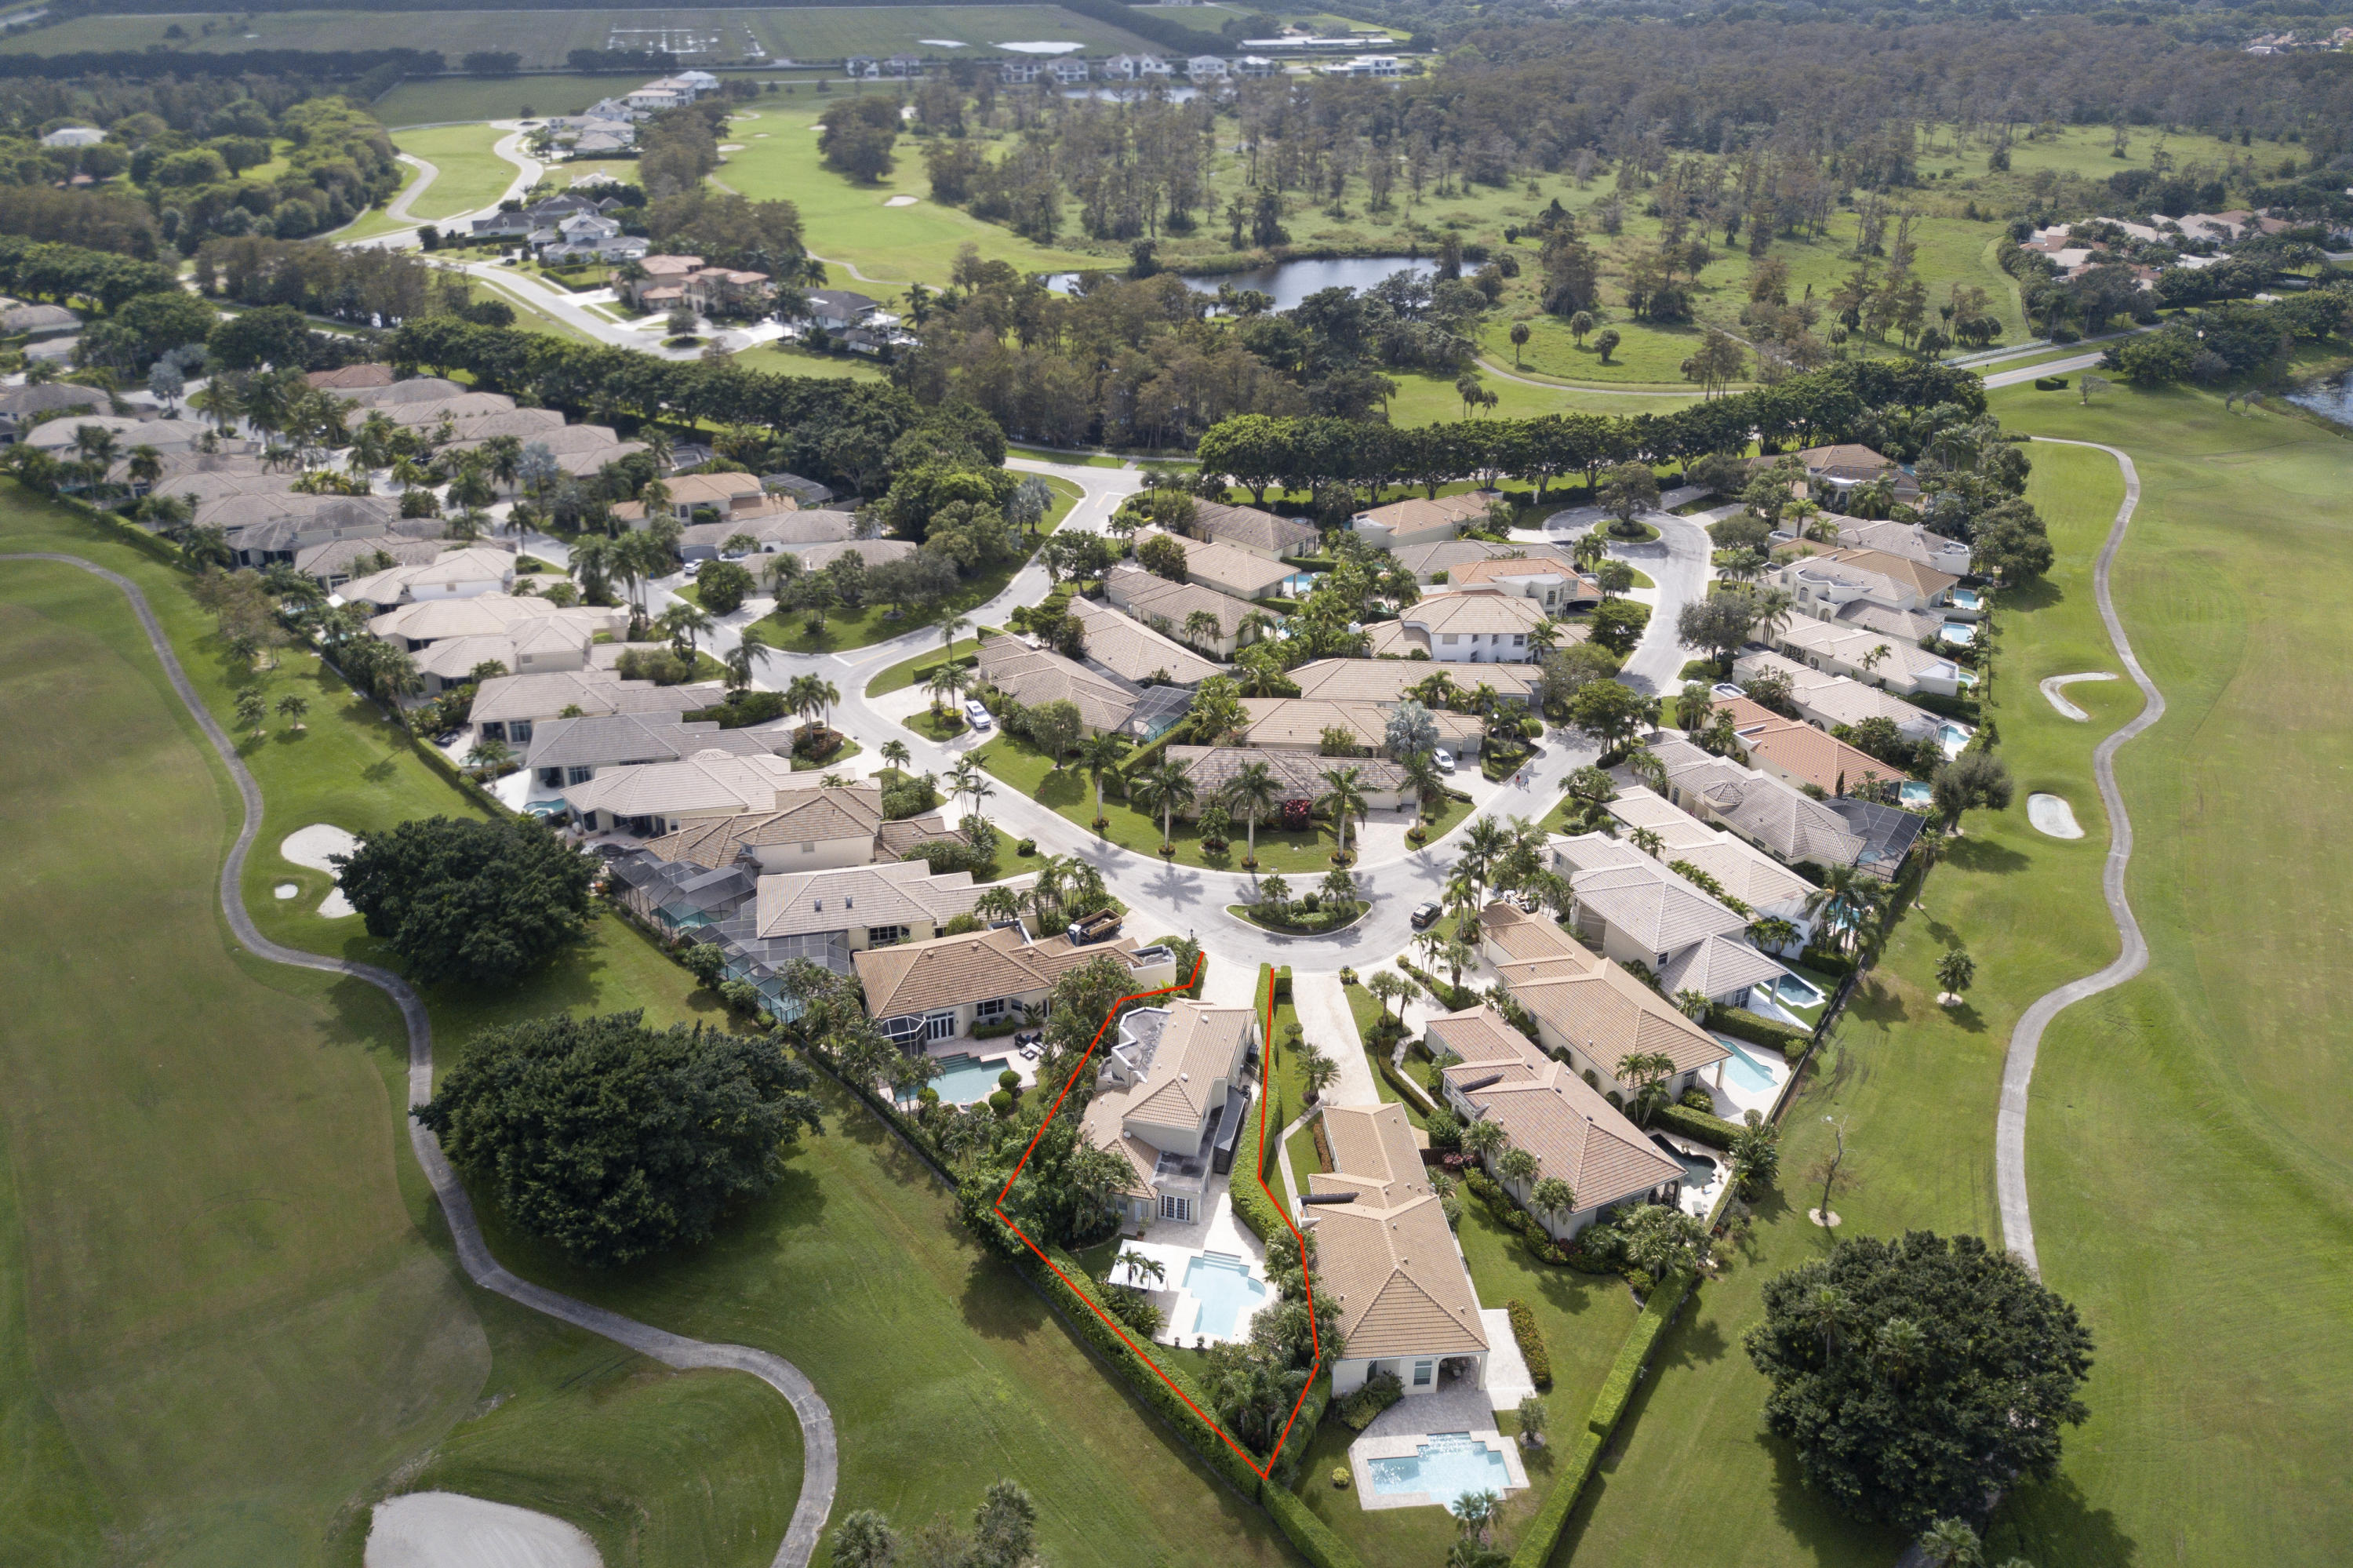 2490 Players Court, Wellington, Florida 33414, 4 Bedrooms Bedrooms, ,4.1 BathroomsBathrooms,Single Family,For Sale,PALM BEACH POLO,Players,RX-10669454